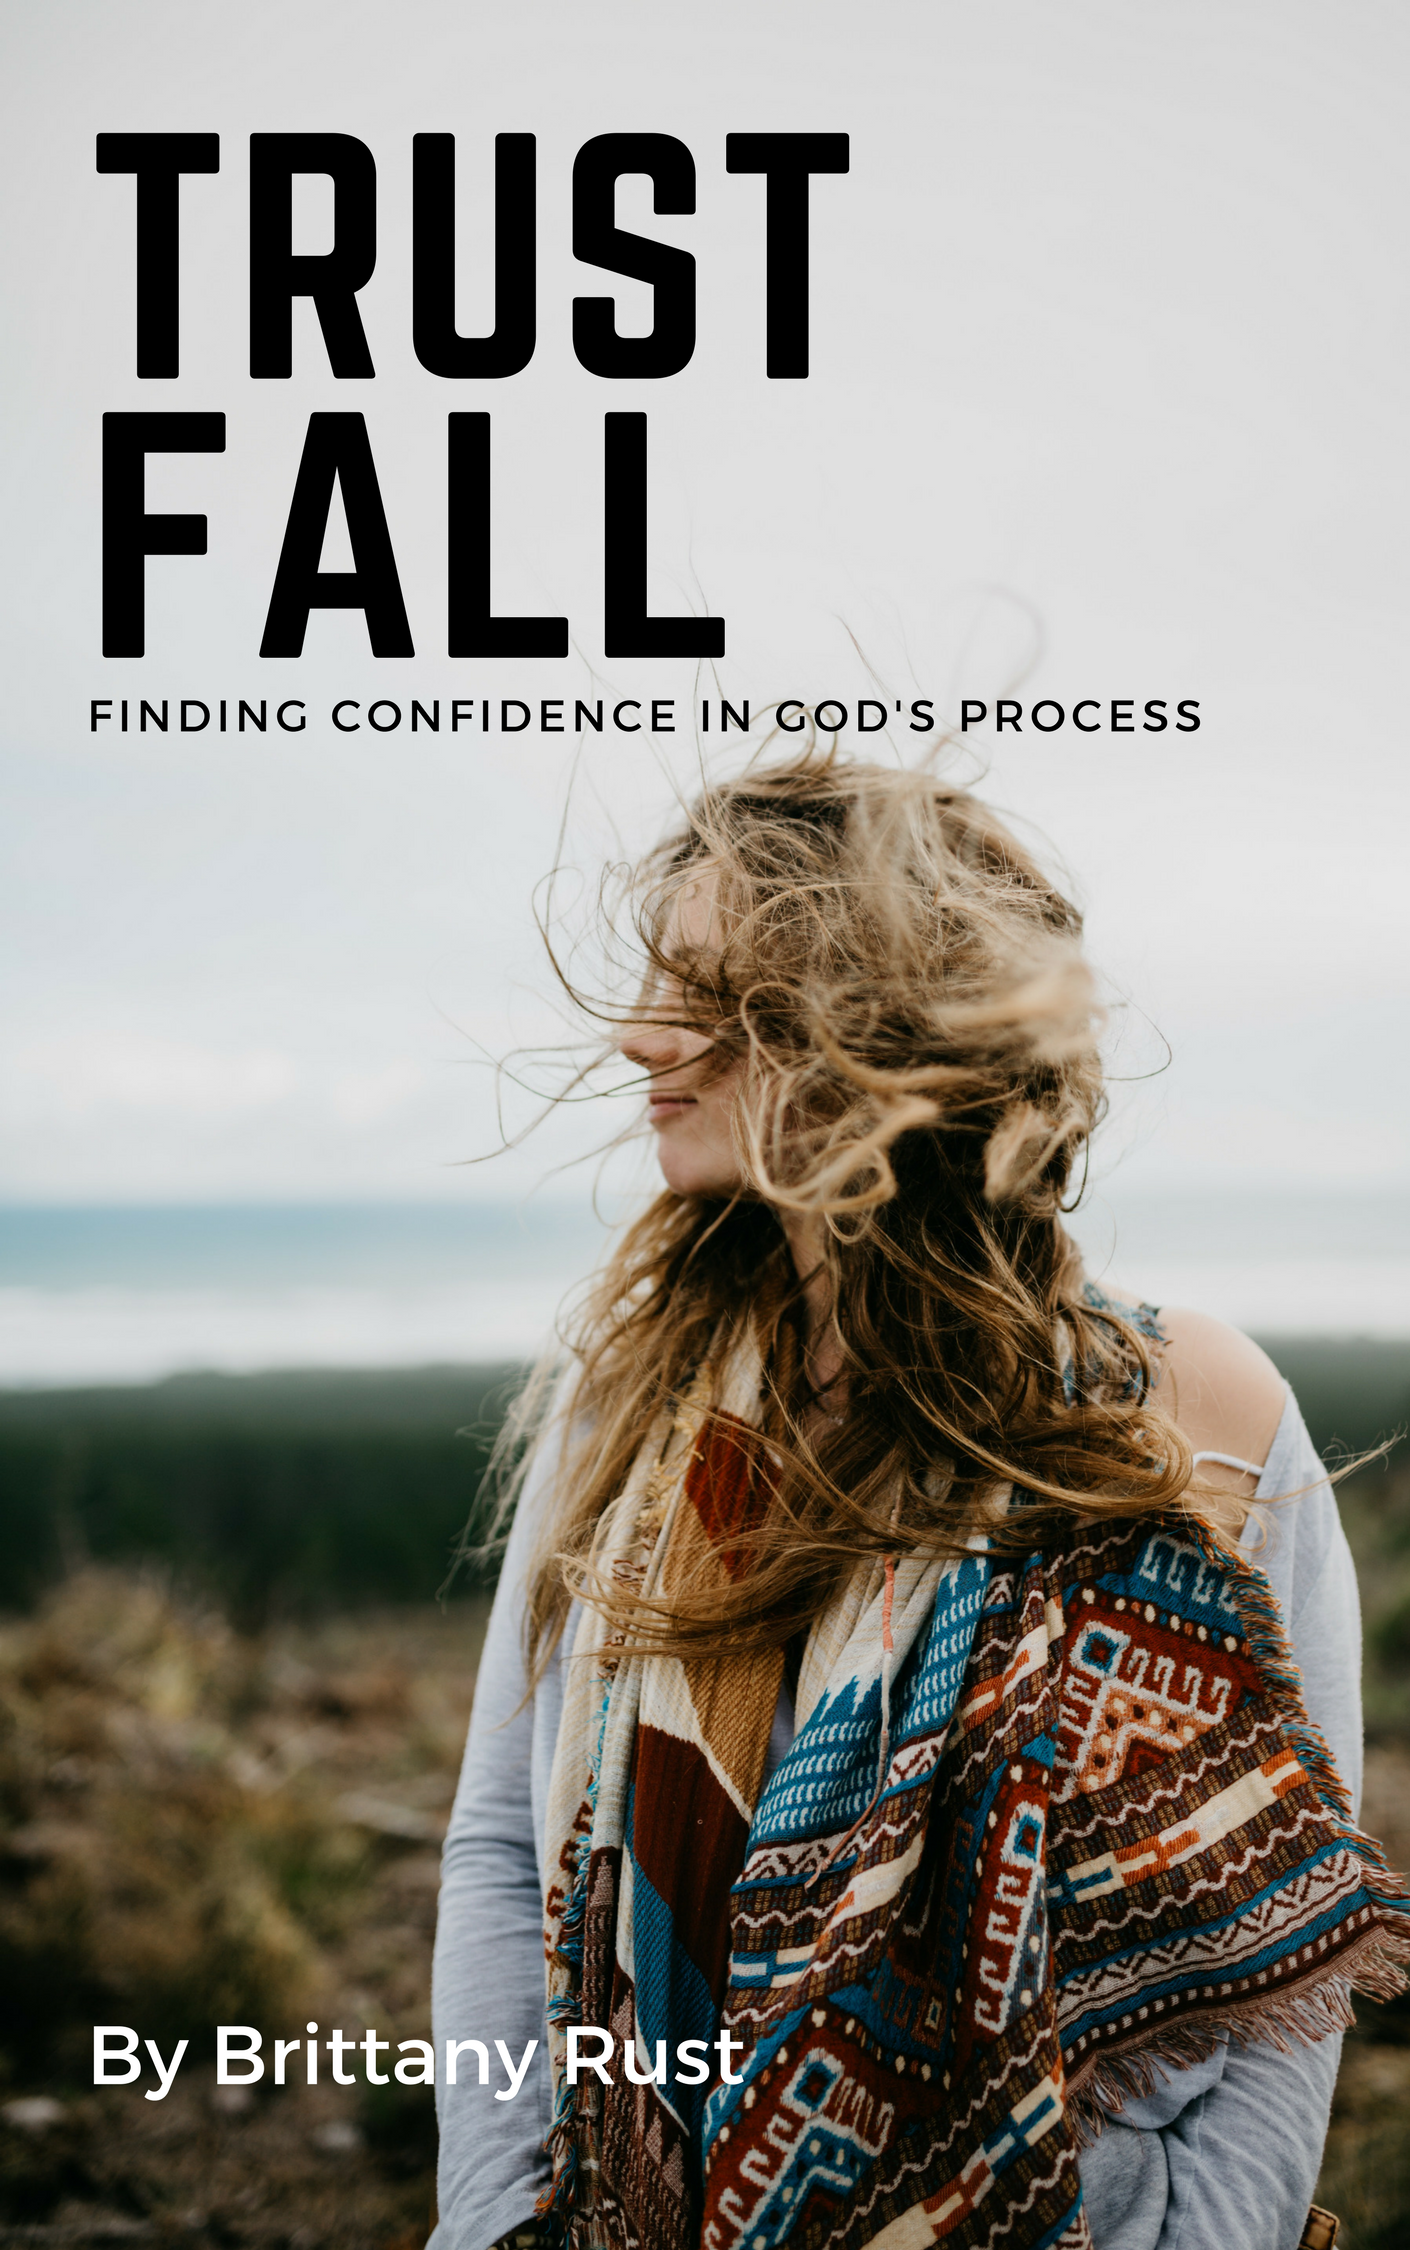 Trust Fall Bible Study by Brittany Rust